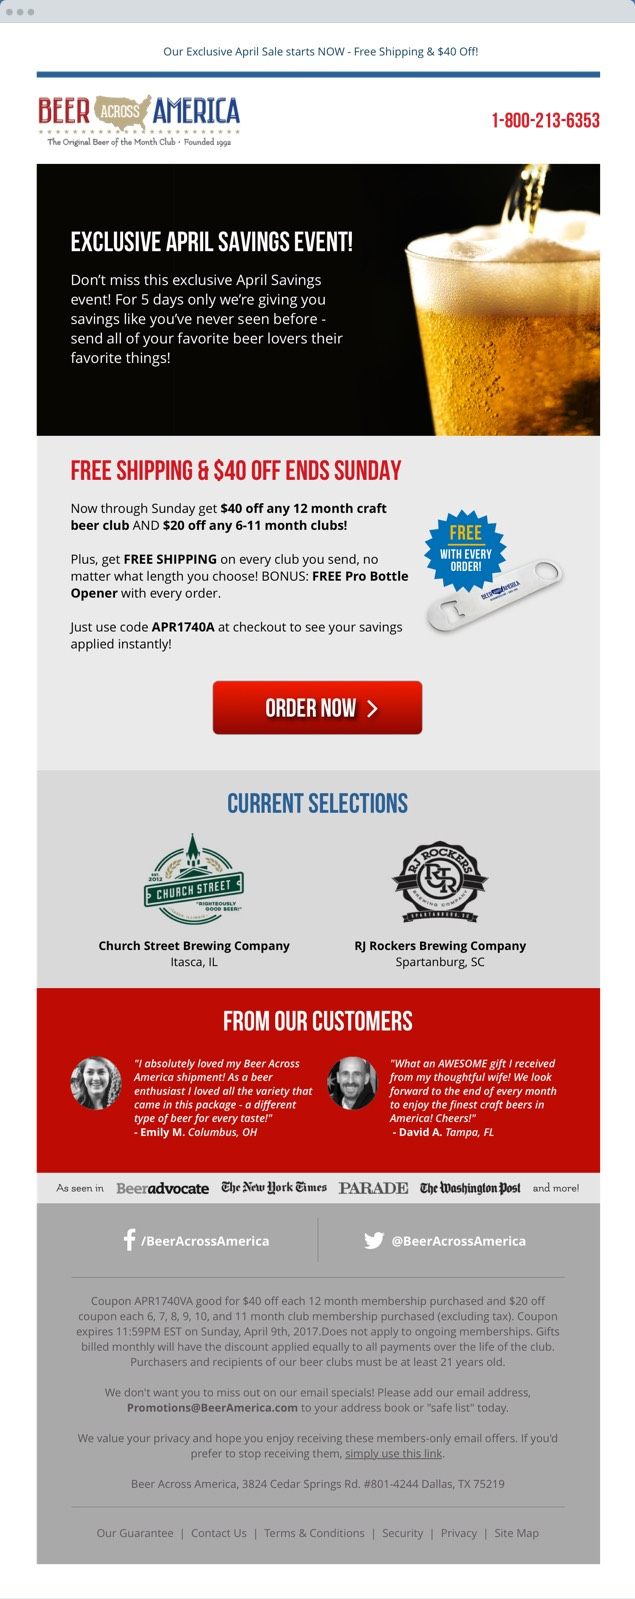 Beer America Responsive Email Design